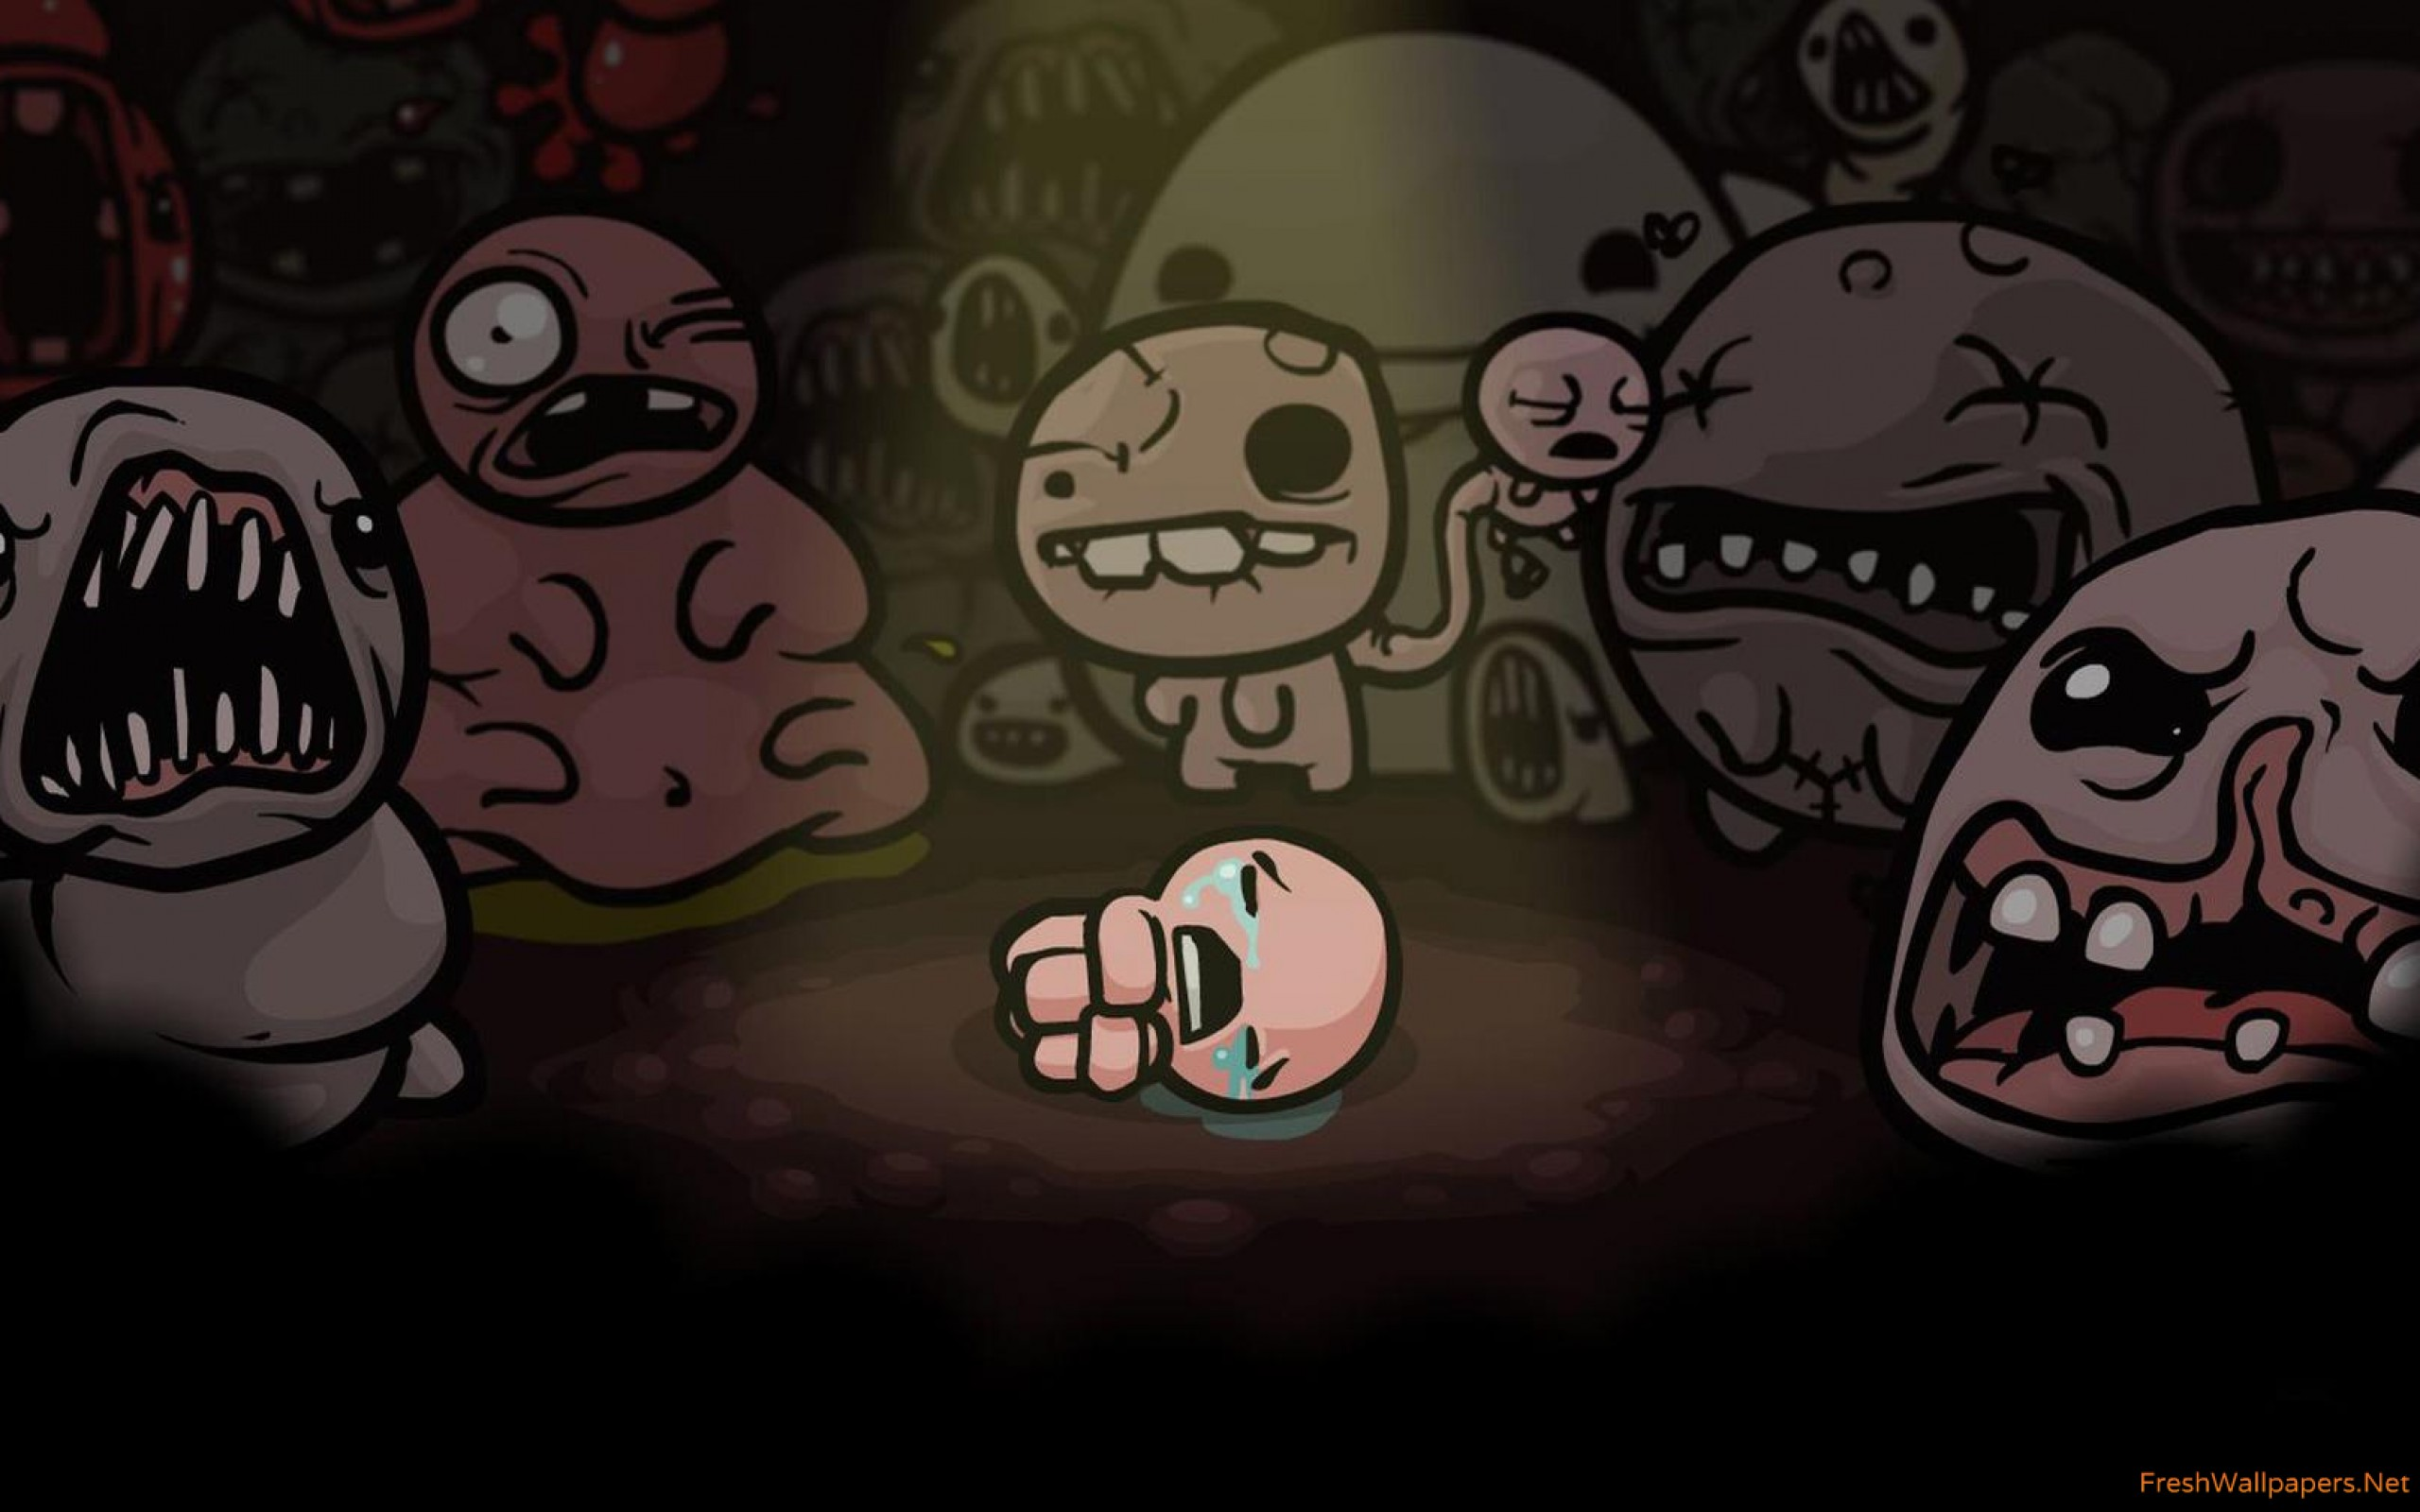 The Binding of Isaac wallpapers Freshwallpapers 2560x1600